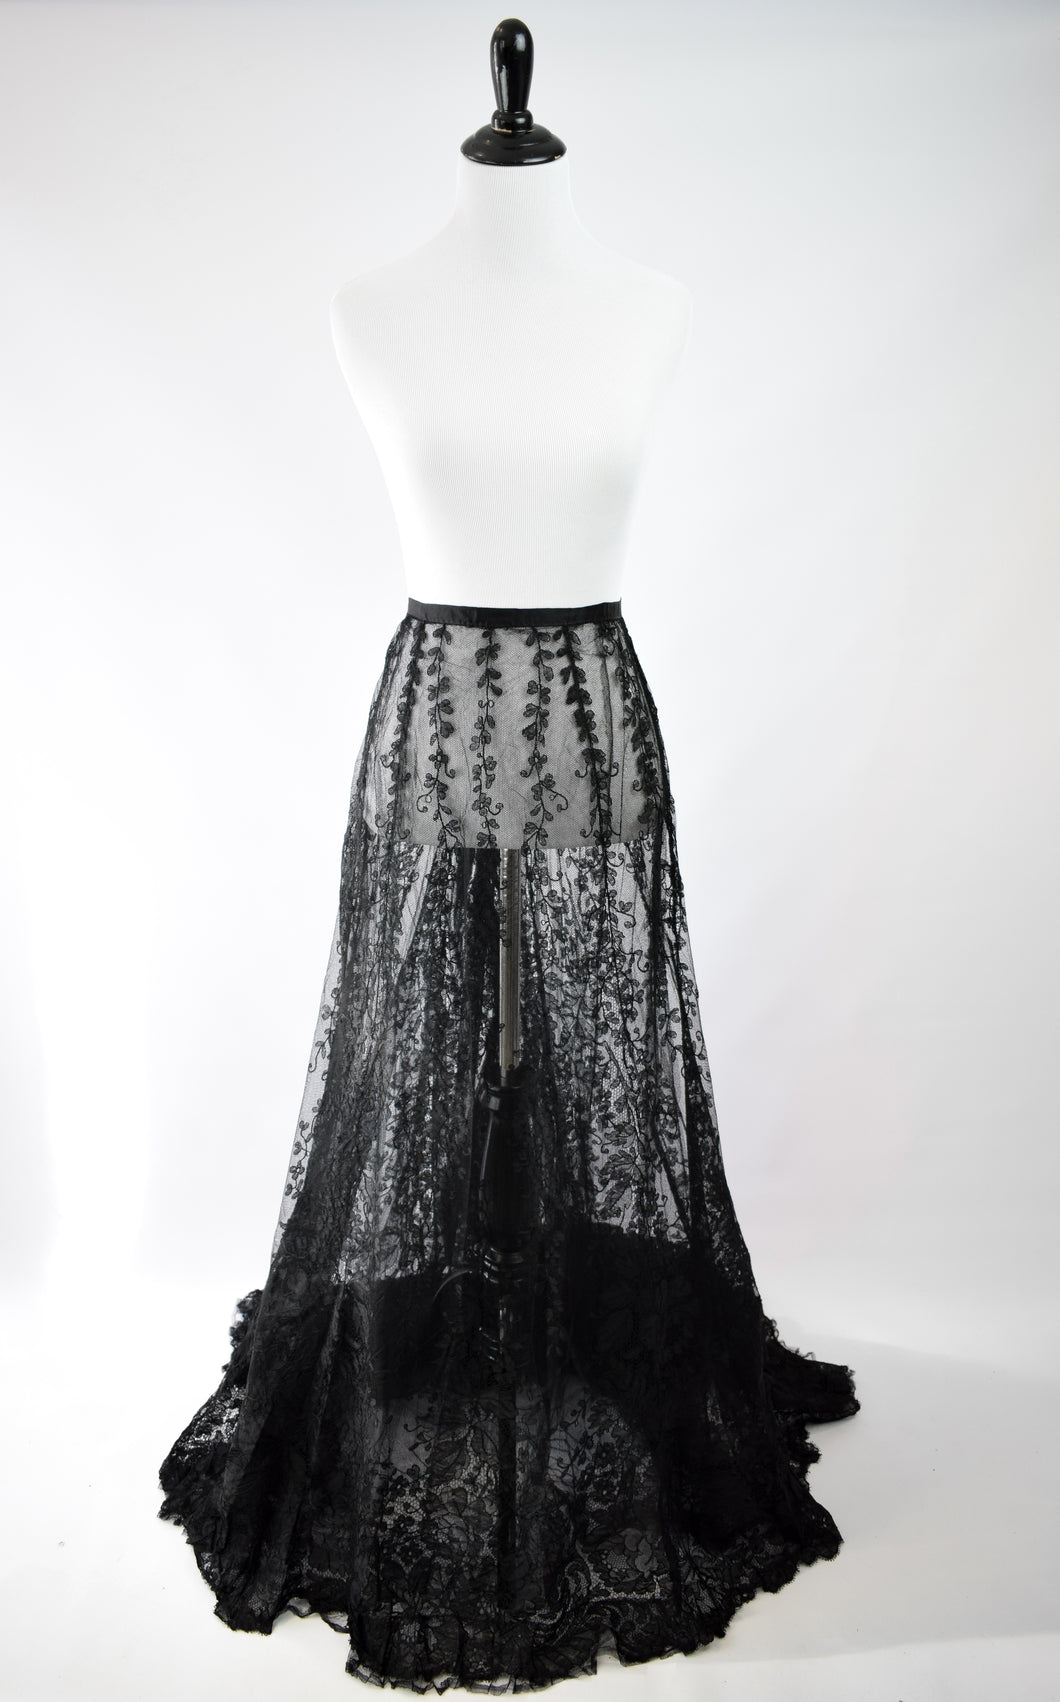 1880s Victorian Sheer Black Lace Skirt